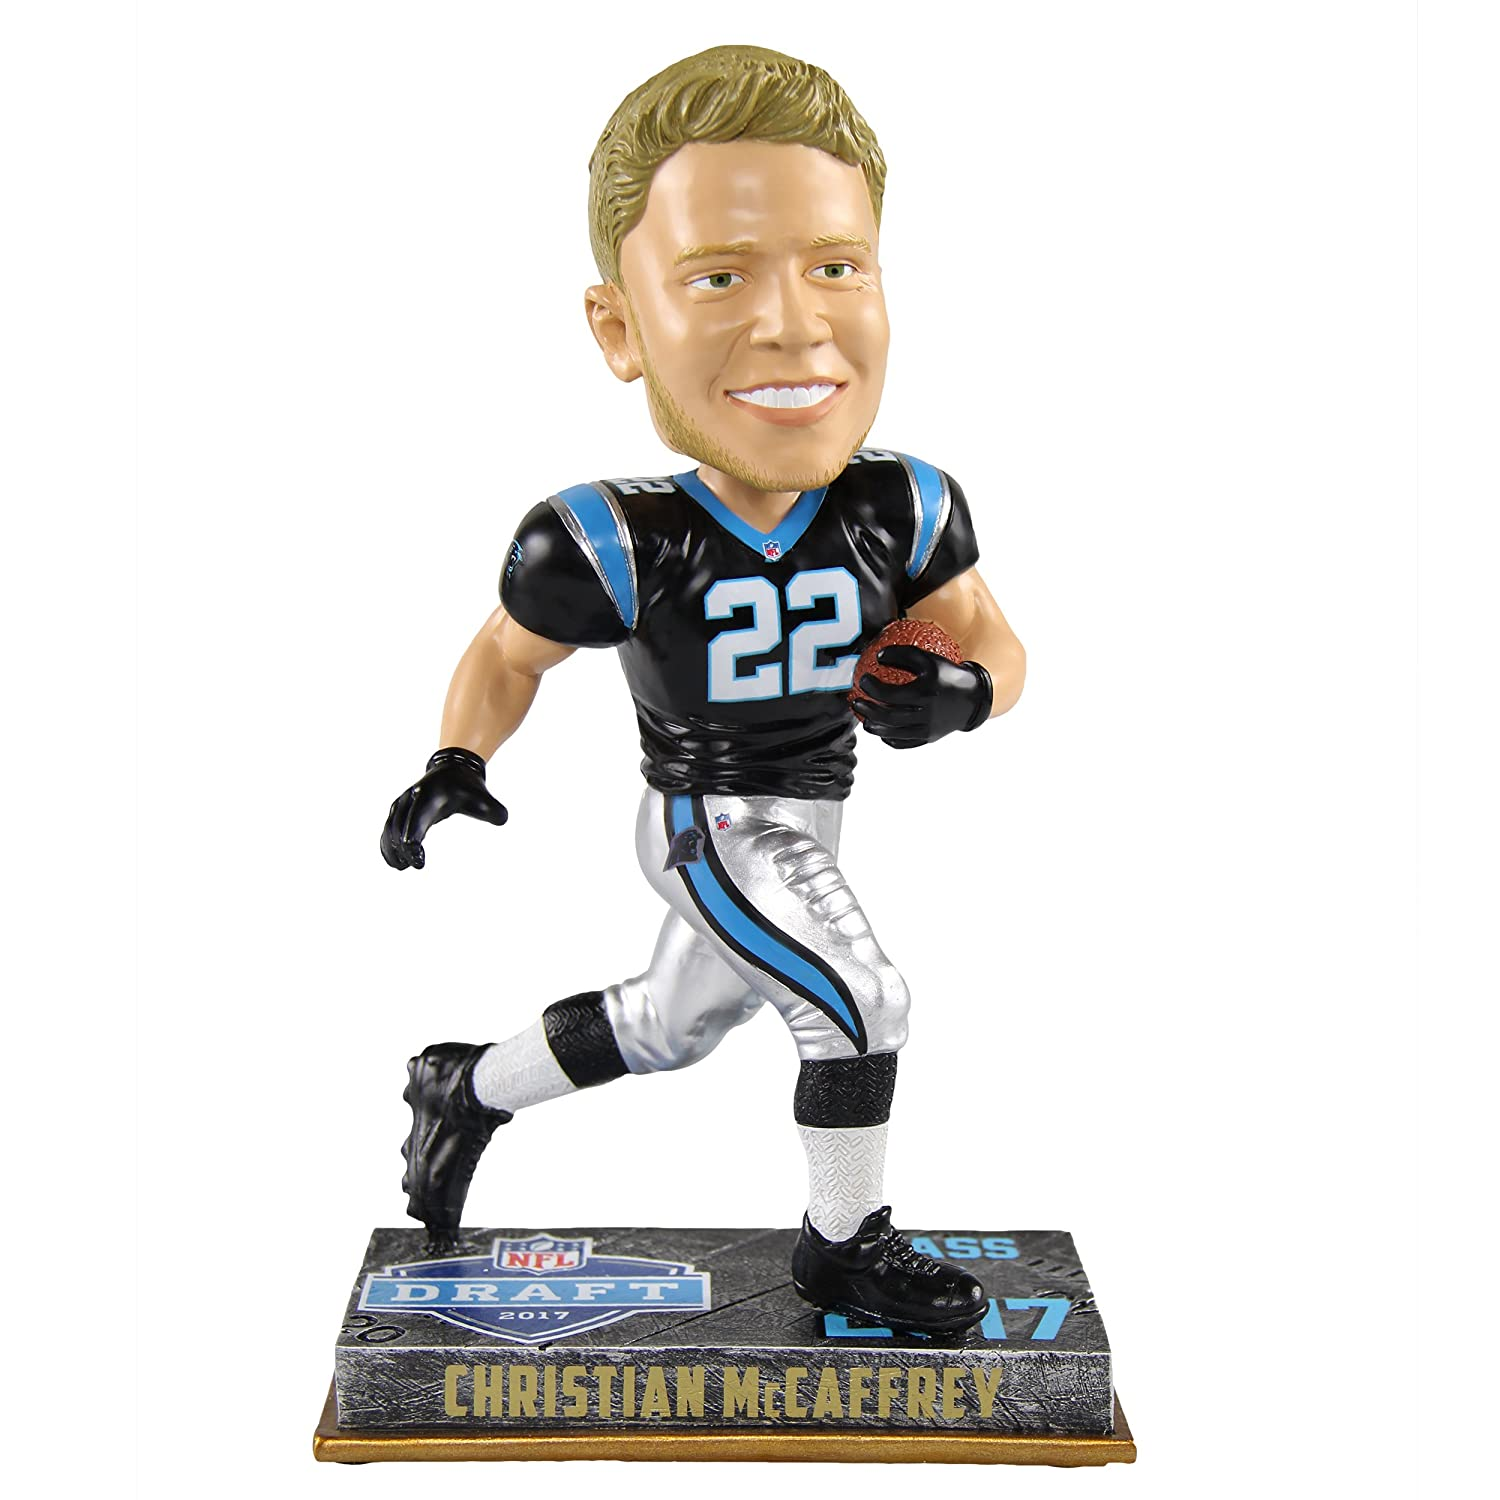 Christian McCaffrey Carolina Panthers 2017 NFL Rookie Bobblehead NFL FOCO